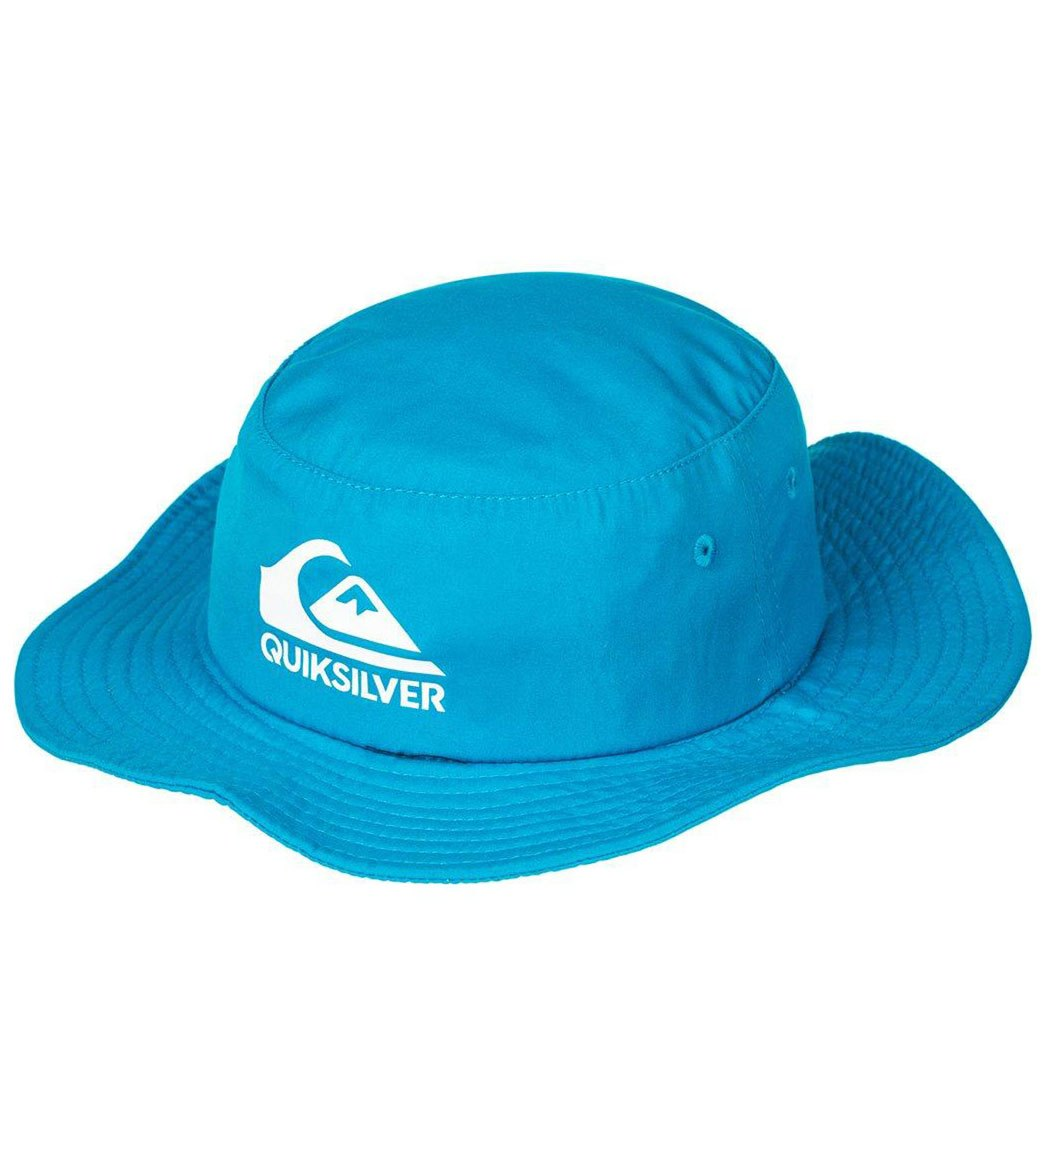 reputable site 0c9f2 85978 Quiksilver Boys  Gelly 4 Microfiber Bucket Cap (Infant) at SwimOutlet.com